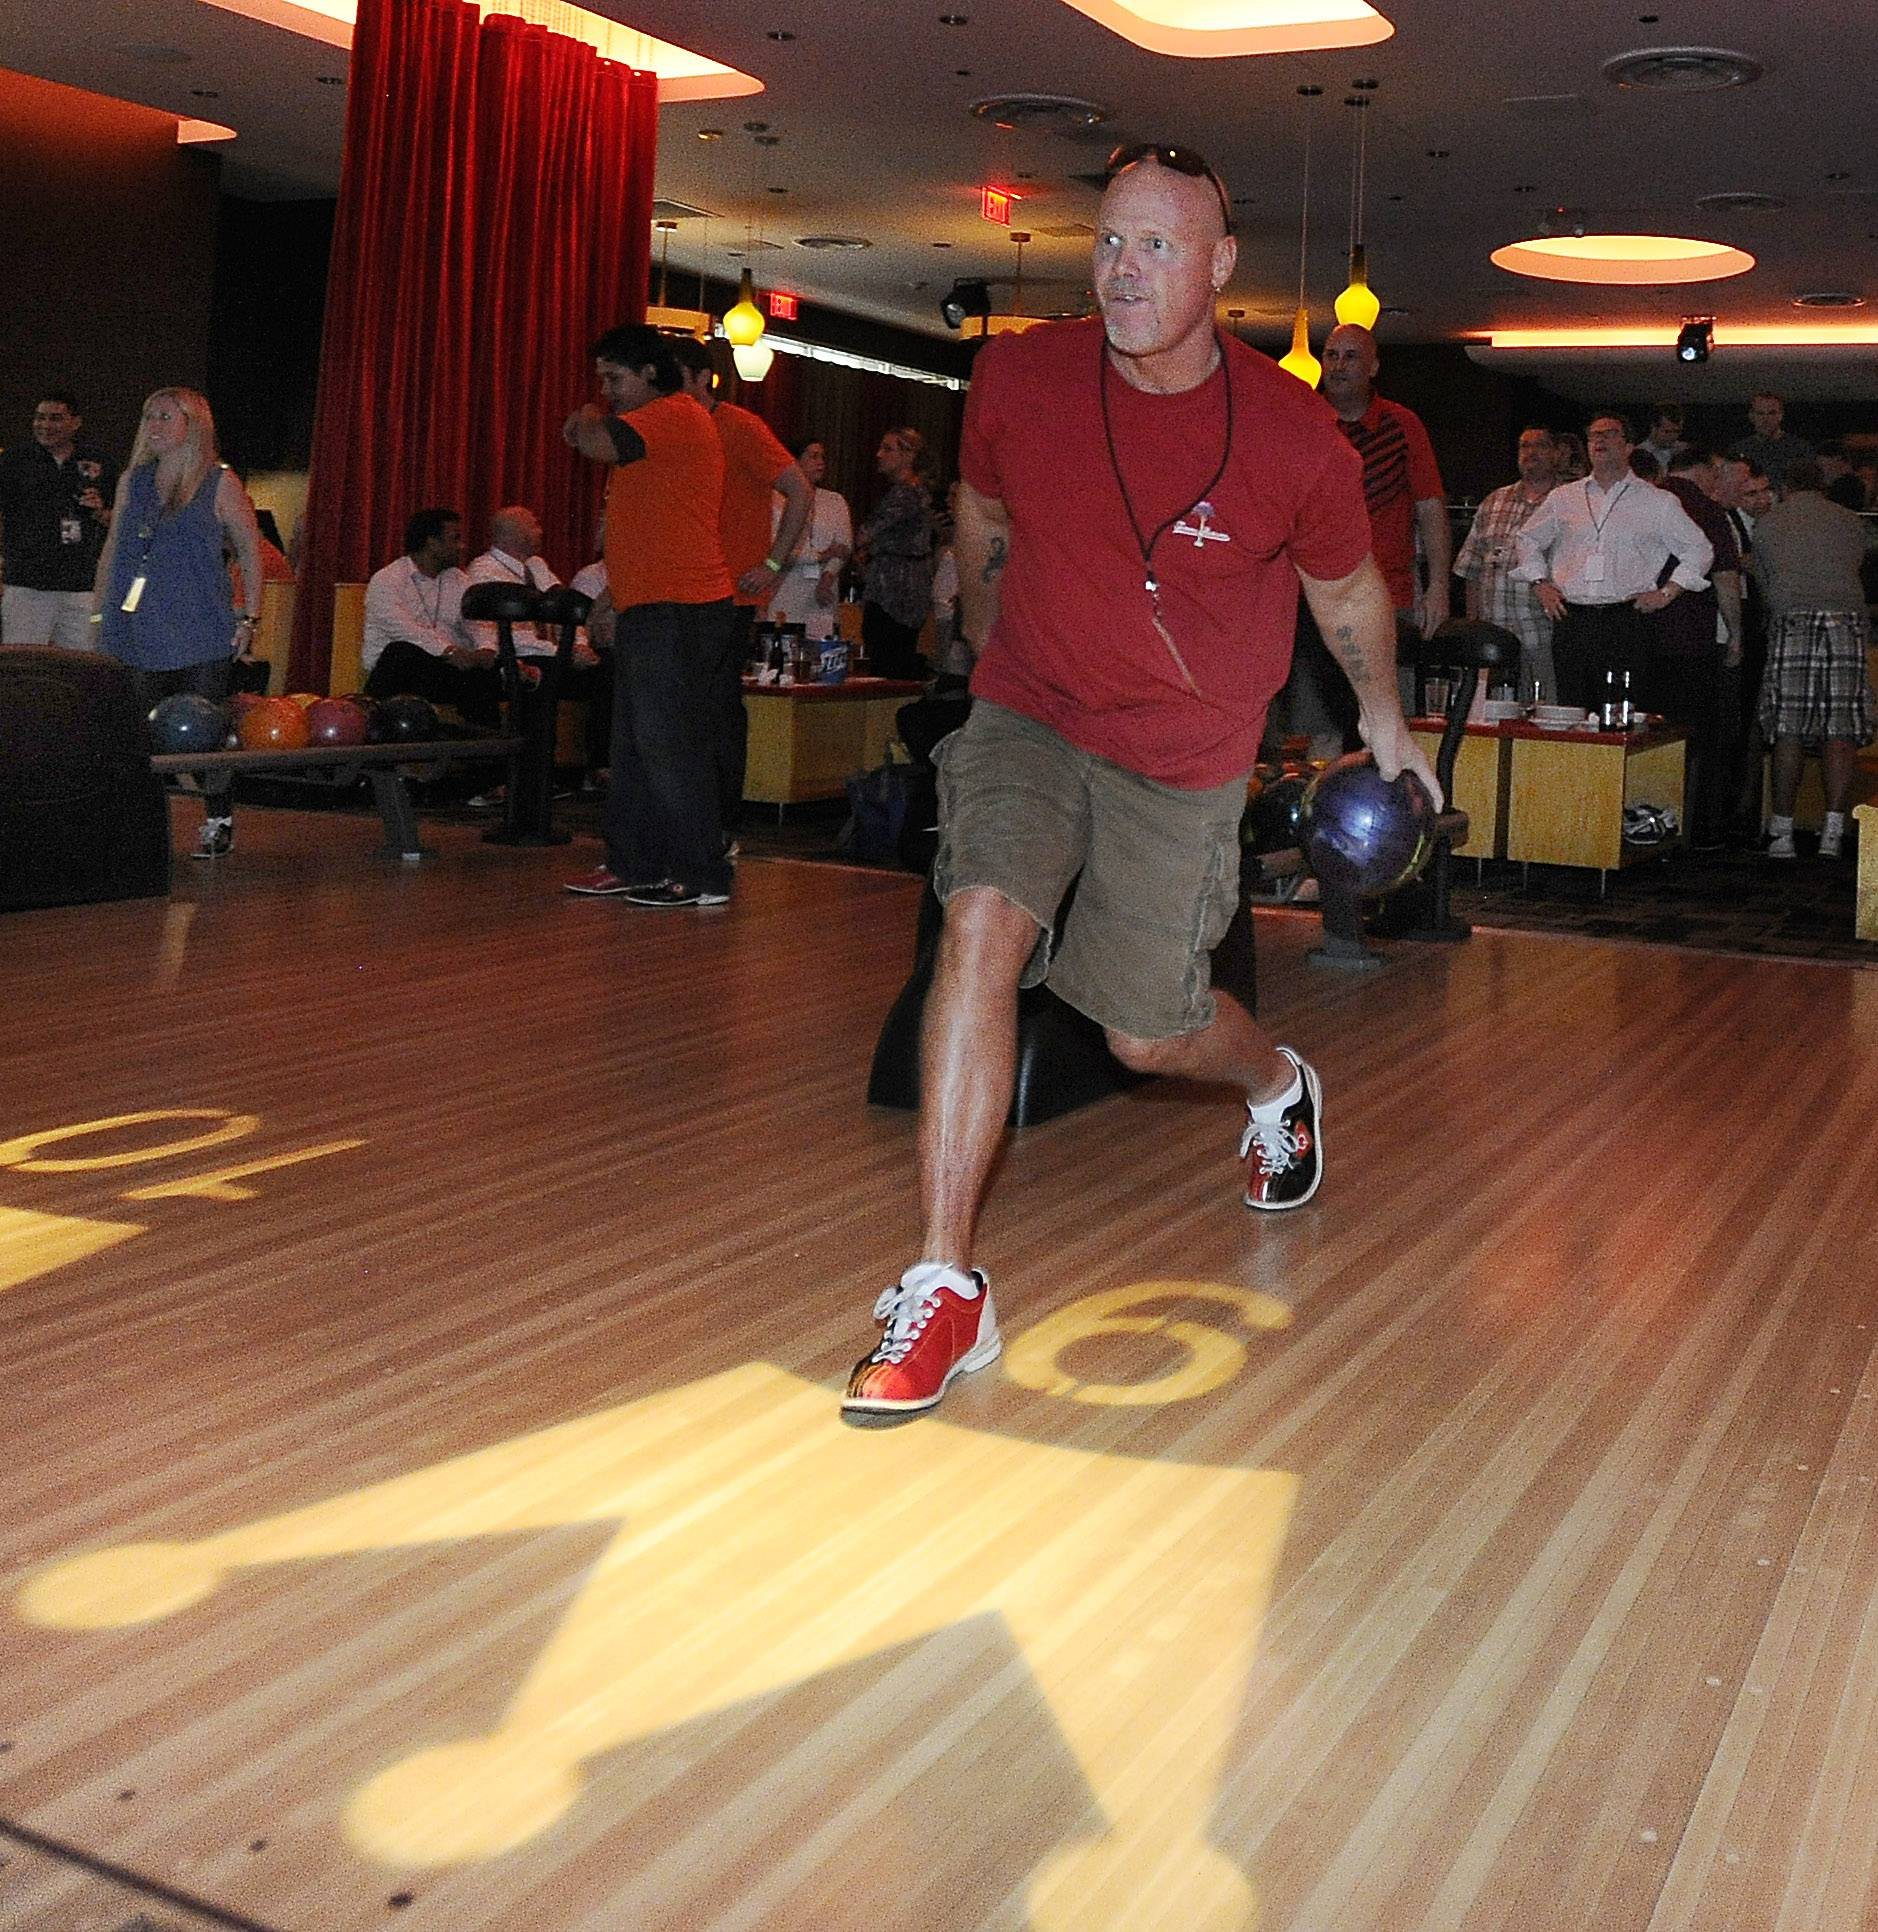 Former Bears quarterback Jim McMahon bowls Thursday night in the third annual Charles Tillman Celebrity Pro BOWLer Tournament in Rosemont.